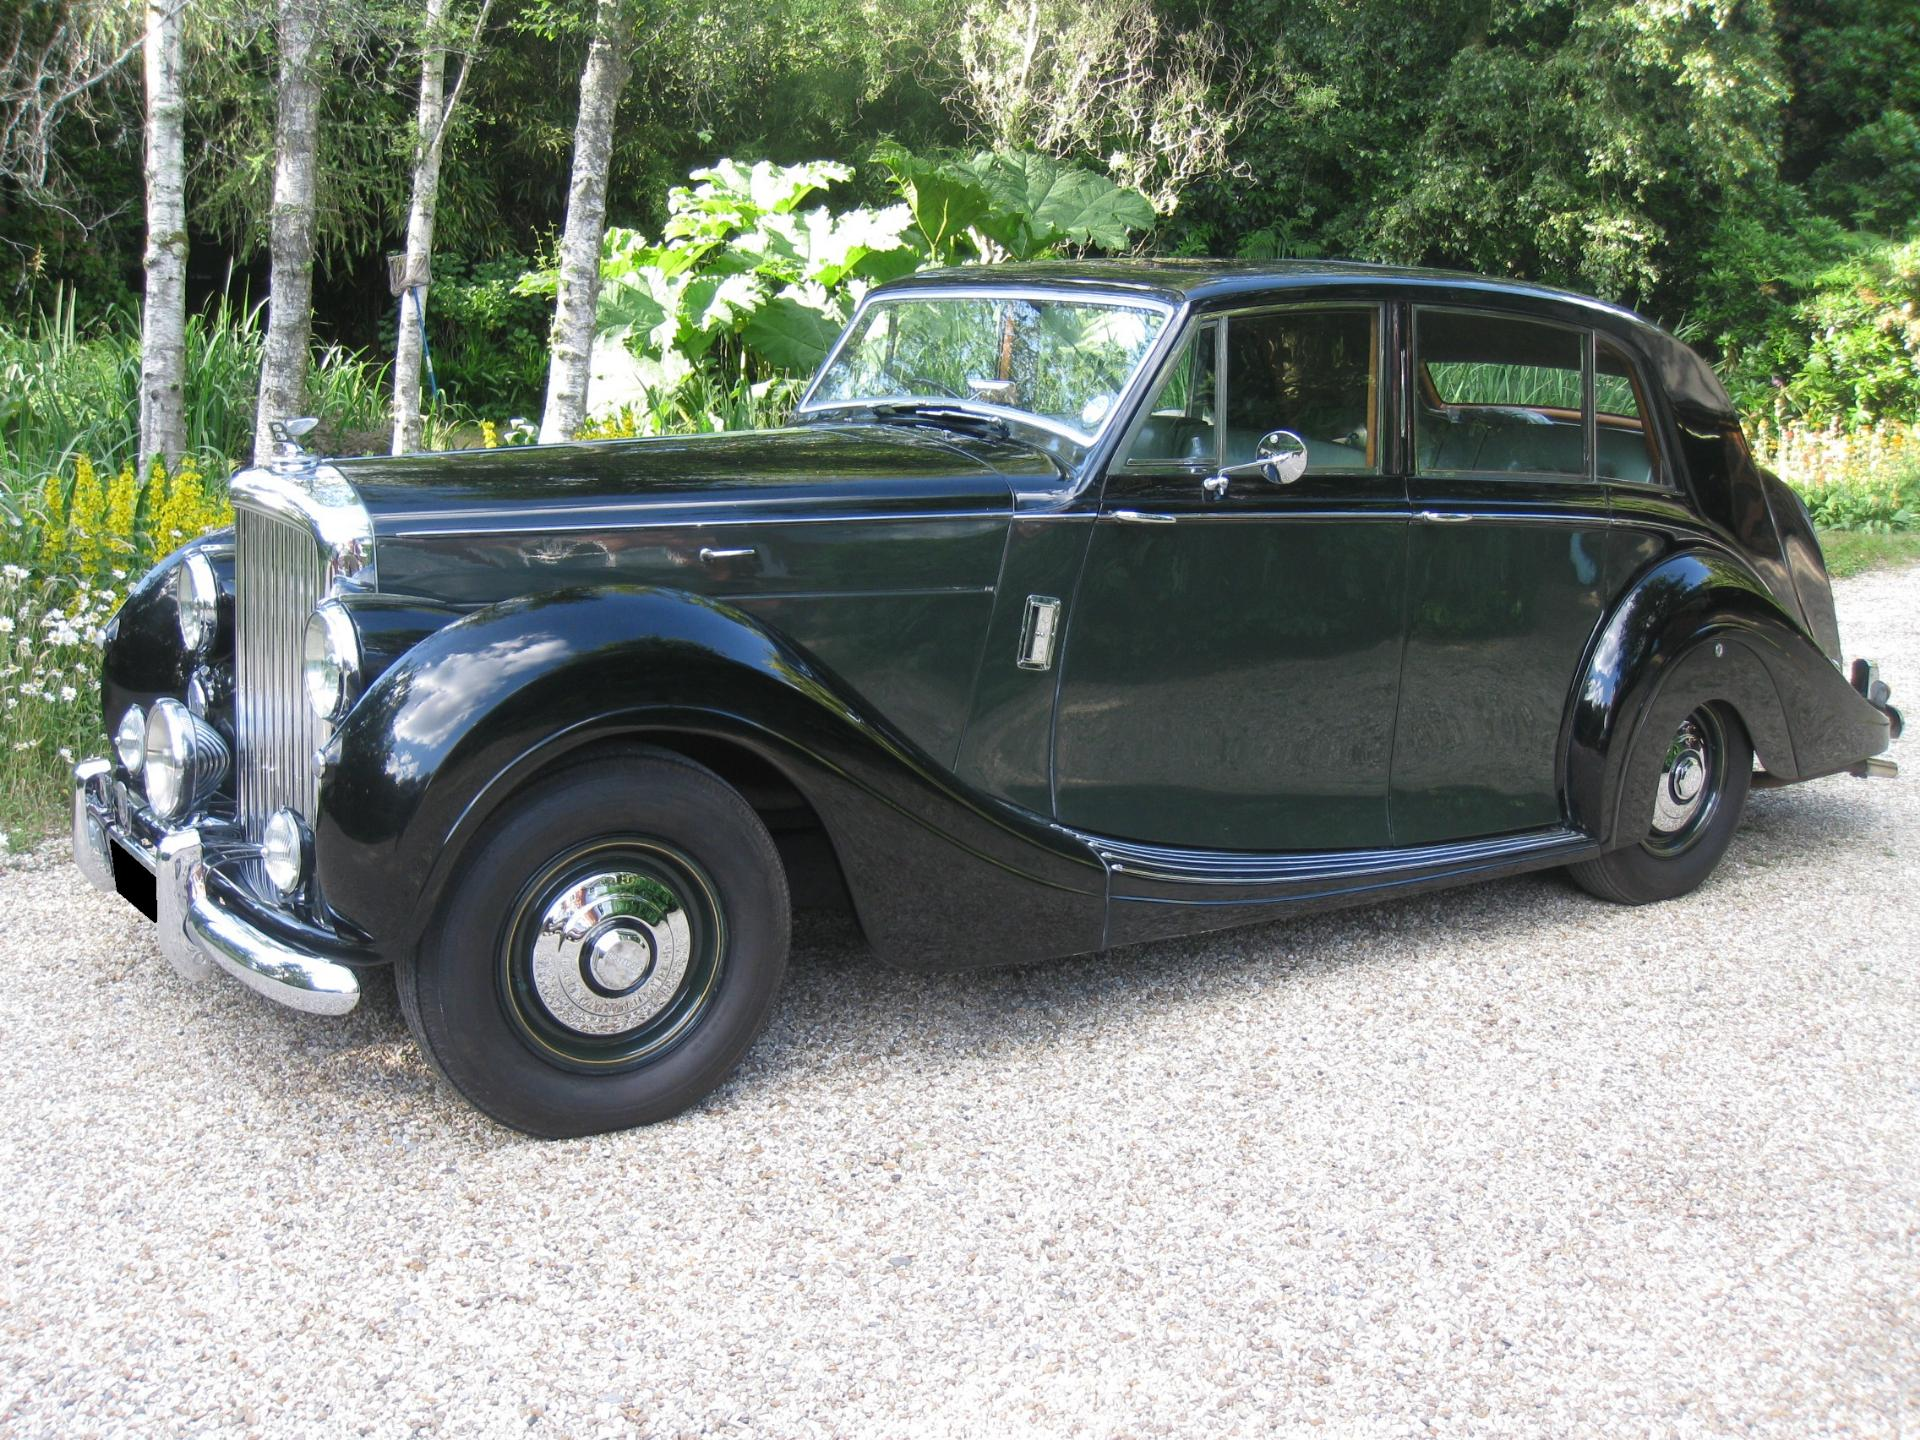 1951 Bentley MKVI Freestone & Webb For Sale In Landford, Wiltshire